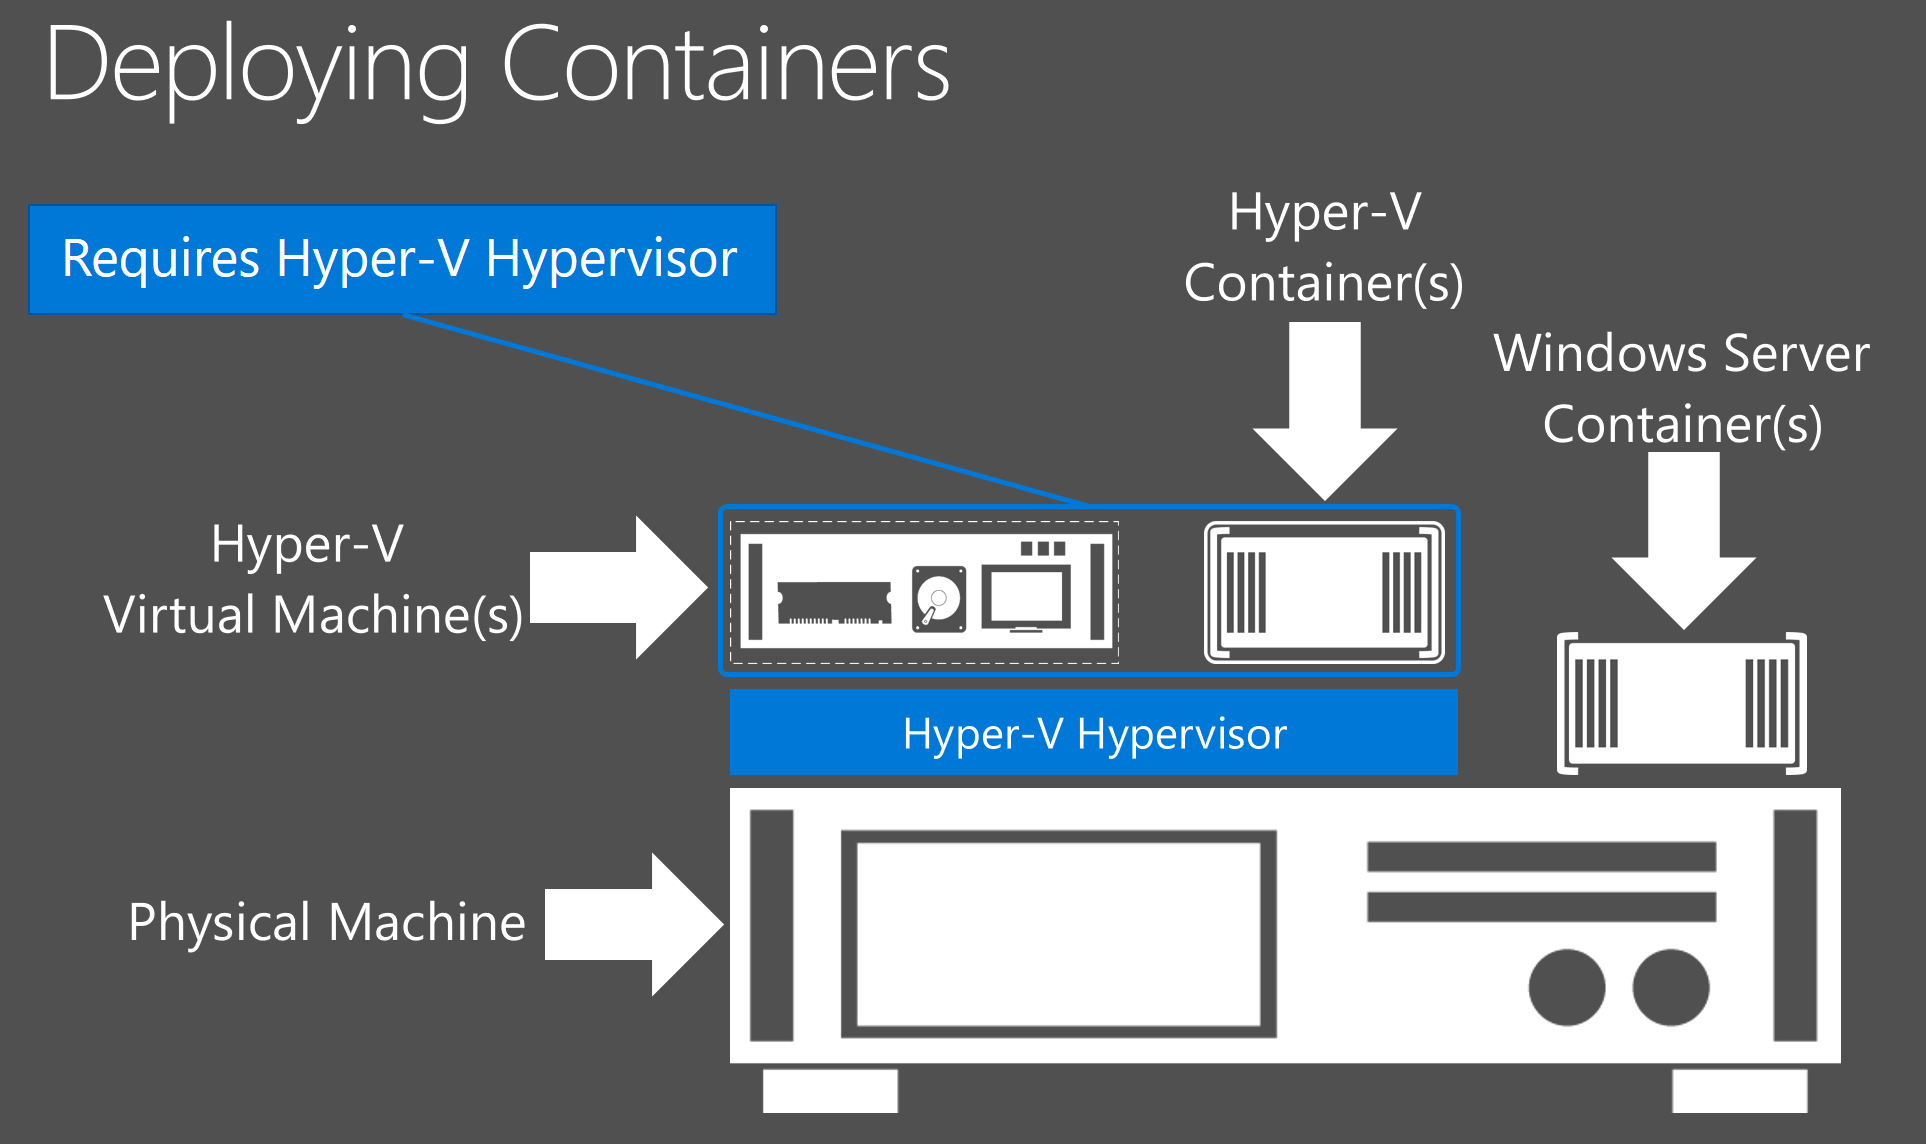 Difference between Hyper-V containers and Windows Server containers